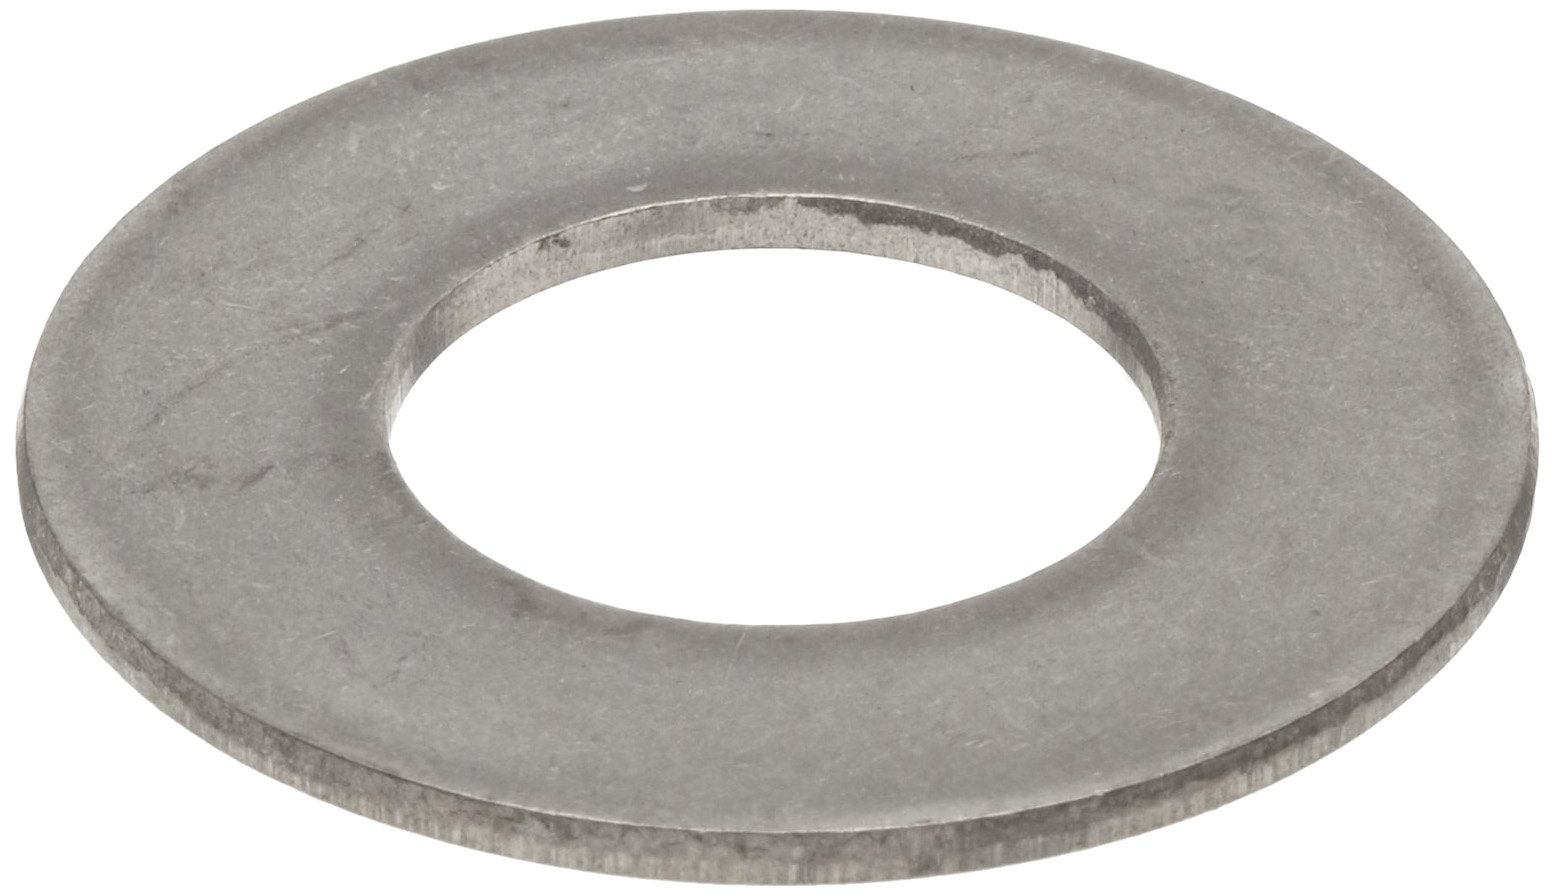 Wide Shim Flat Washer, 18-8 Stainless Steel, 1-1/4'' Bolt Size, 1.250'' ID, 1.875'' OD, 0.075'' Thick (Pack of 5)